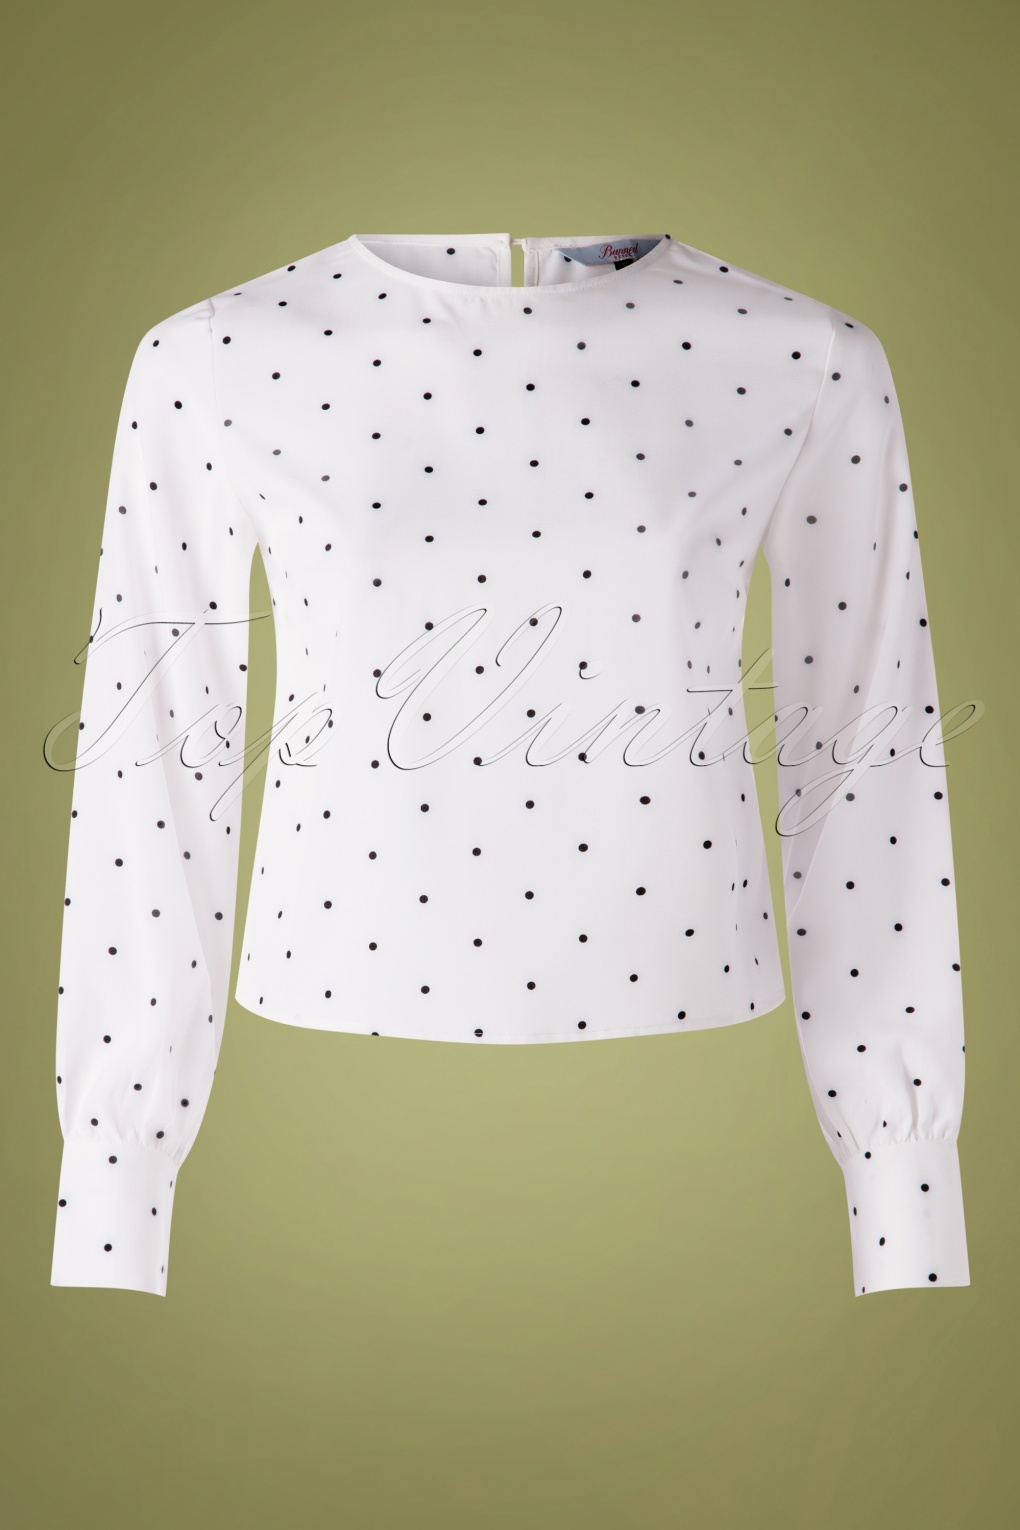 60s Shirts, T-shirt, Blouses, Hippie Shirts 60s Boxy Dot Blouse in White £31.46 AT vintagedancer.com